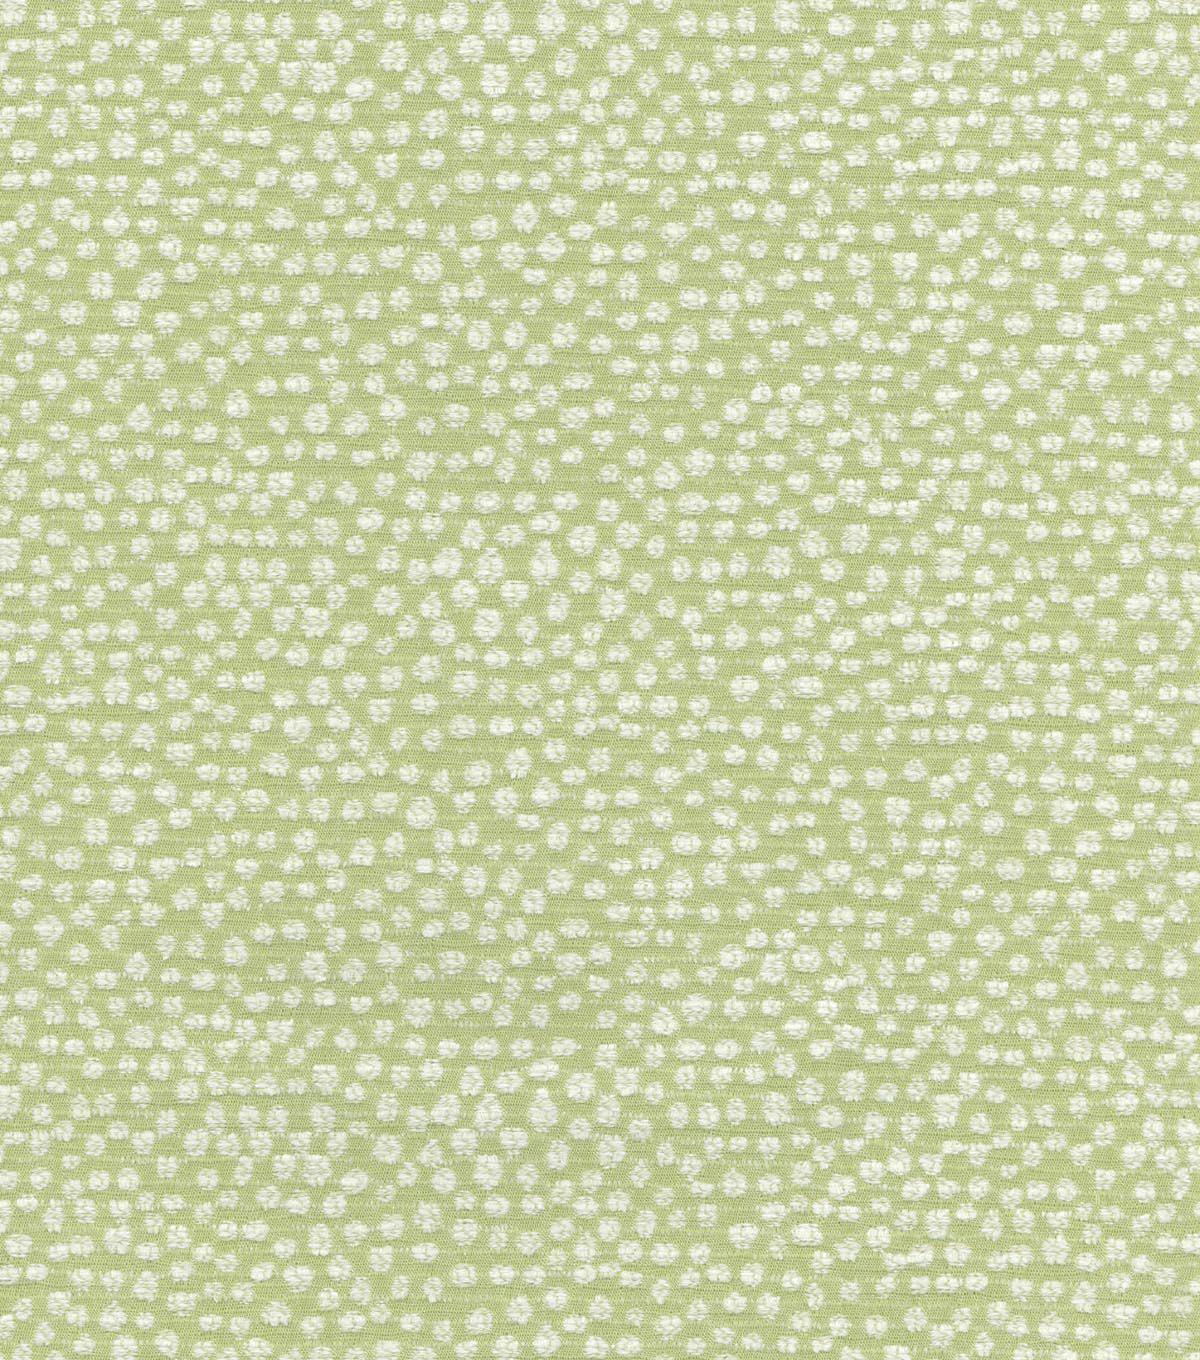 Home Decor 8\u0022x8\u0022 Swatch Fabric-Waverly Pebble Meadow